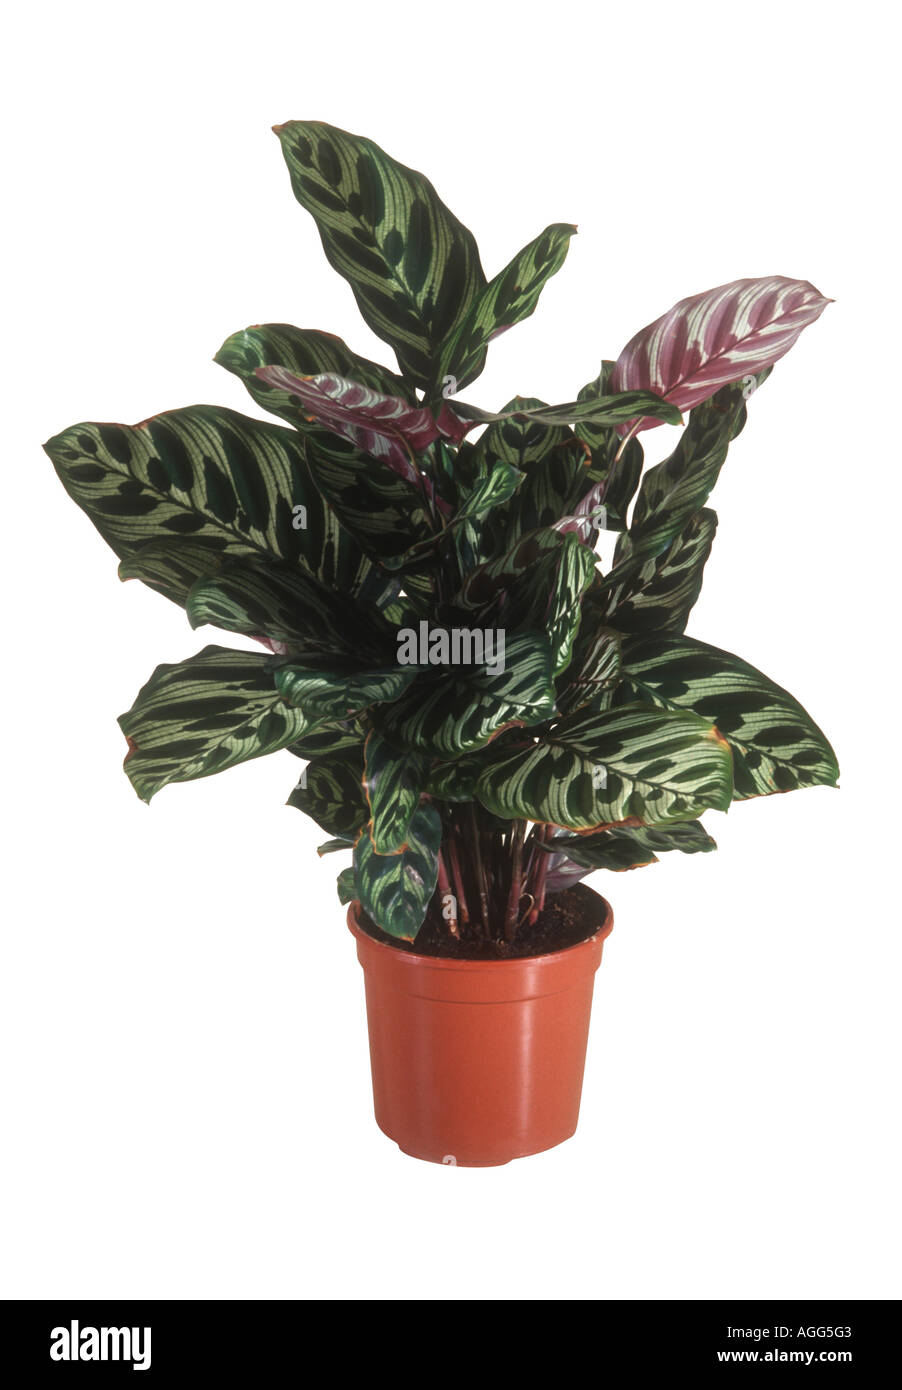 peacock plant calathea makoyana potted plant stock photo royalty free image 8115138 alamy. Black Bedroom Furniture Sets. Home Design Ideas